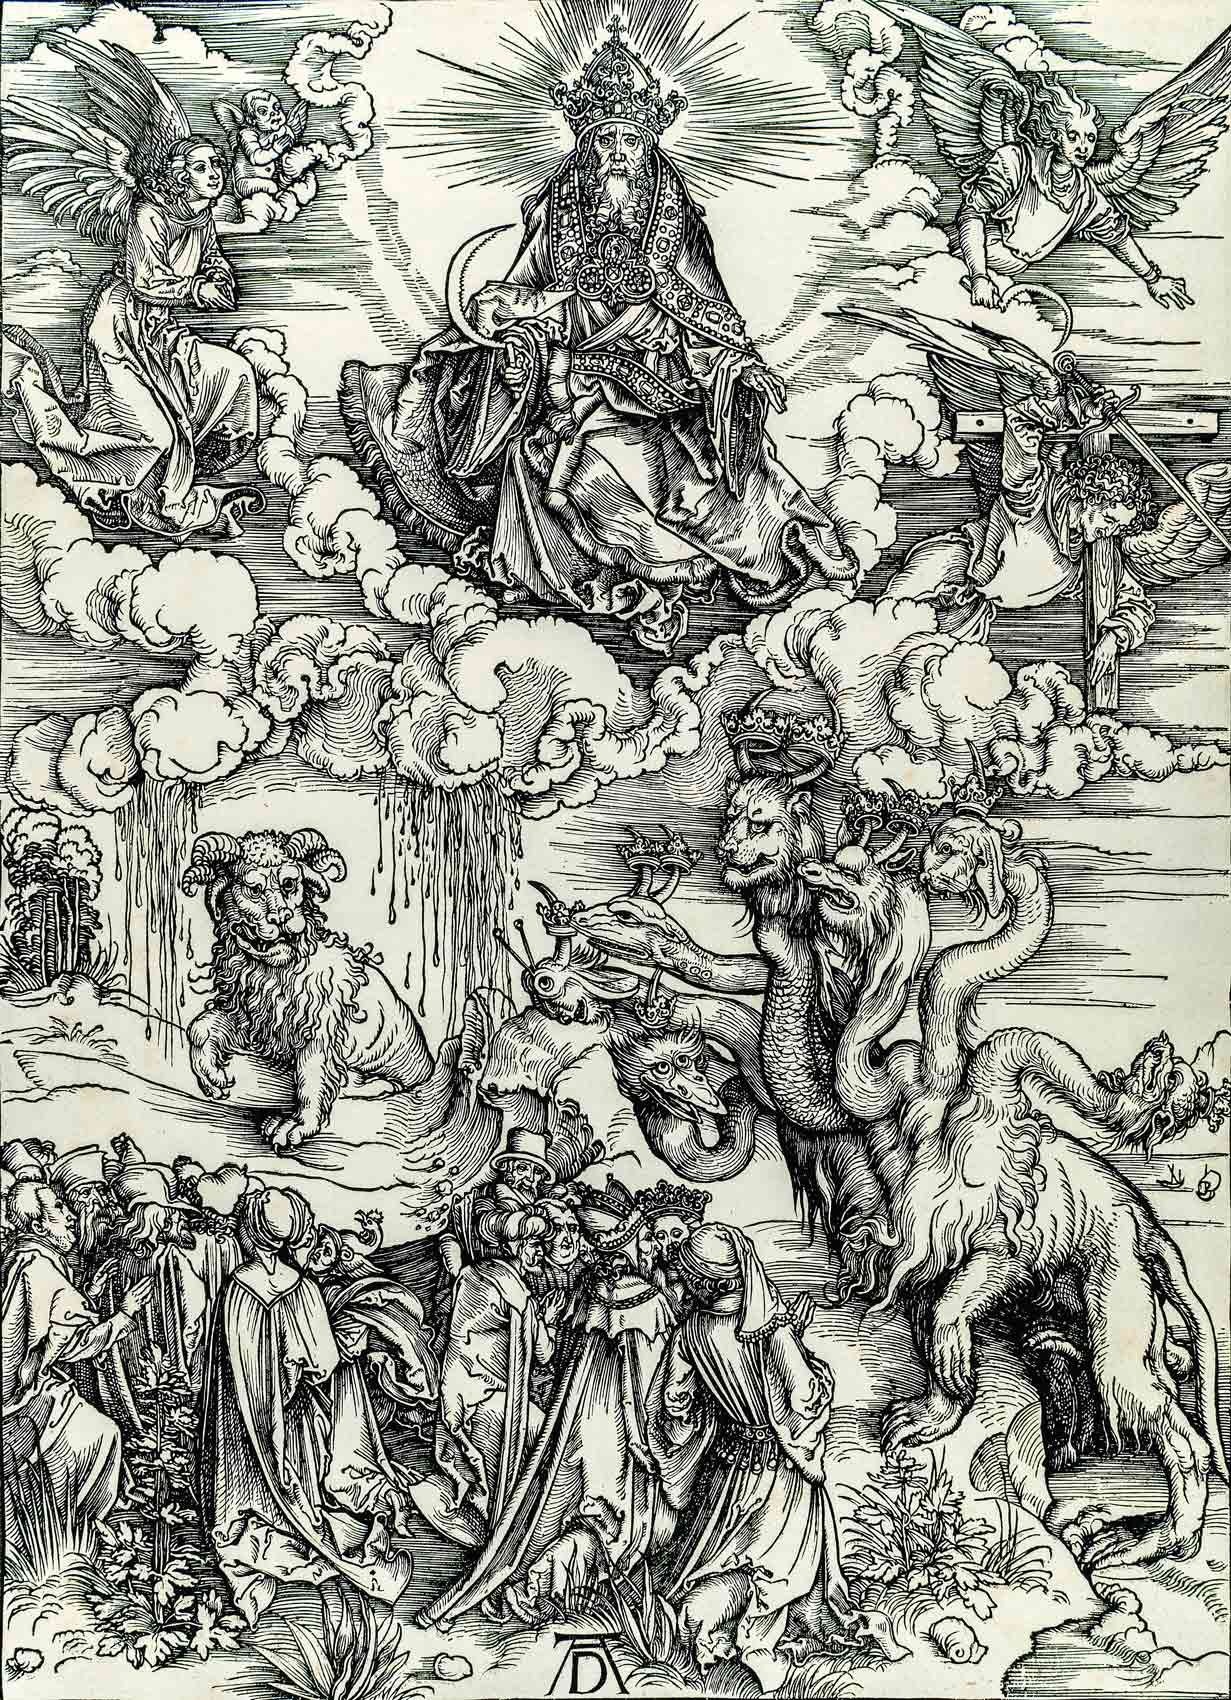 """Albrecht Dürer (1471-1528), The Beast with Two Horns Like a Lamb, plate XI from the series """"The Apocalypse,"""" 1496-1497, woodcut, proof. MMFA, purchase, Claude Dalphond Fund in memory of Gisèle Lachance, Dr. Sean B. Murphy Fund and Horsley and Annie Townsend Bequest"""